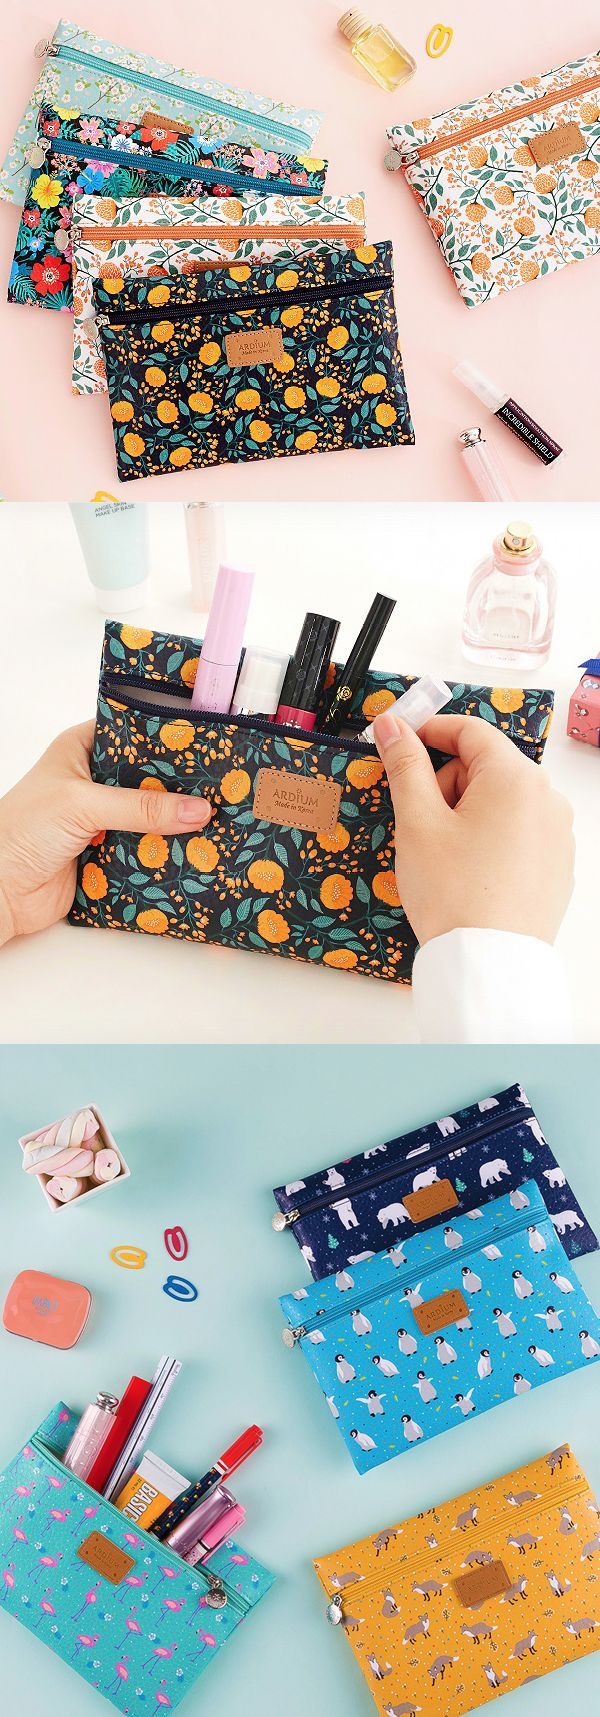 Take your pick! An animal or floral print slim pouch for all your most used pens, makeup, and cosmetics. The perfect little accessory!